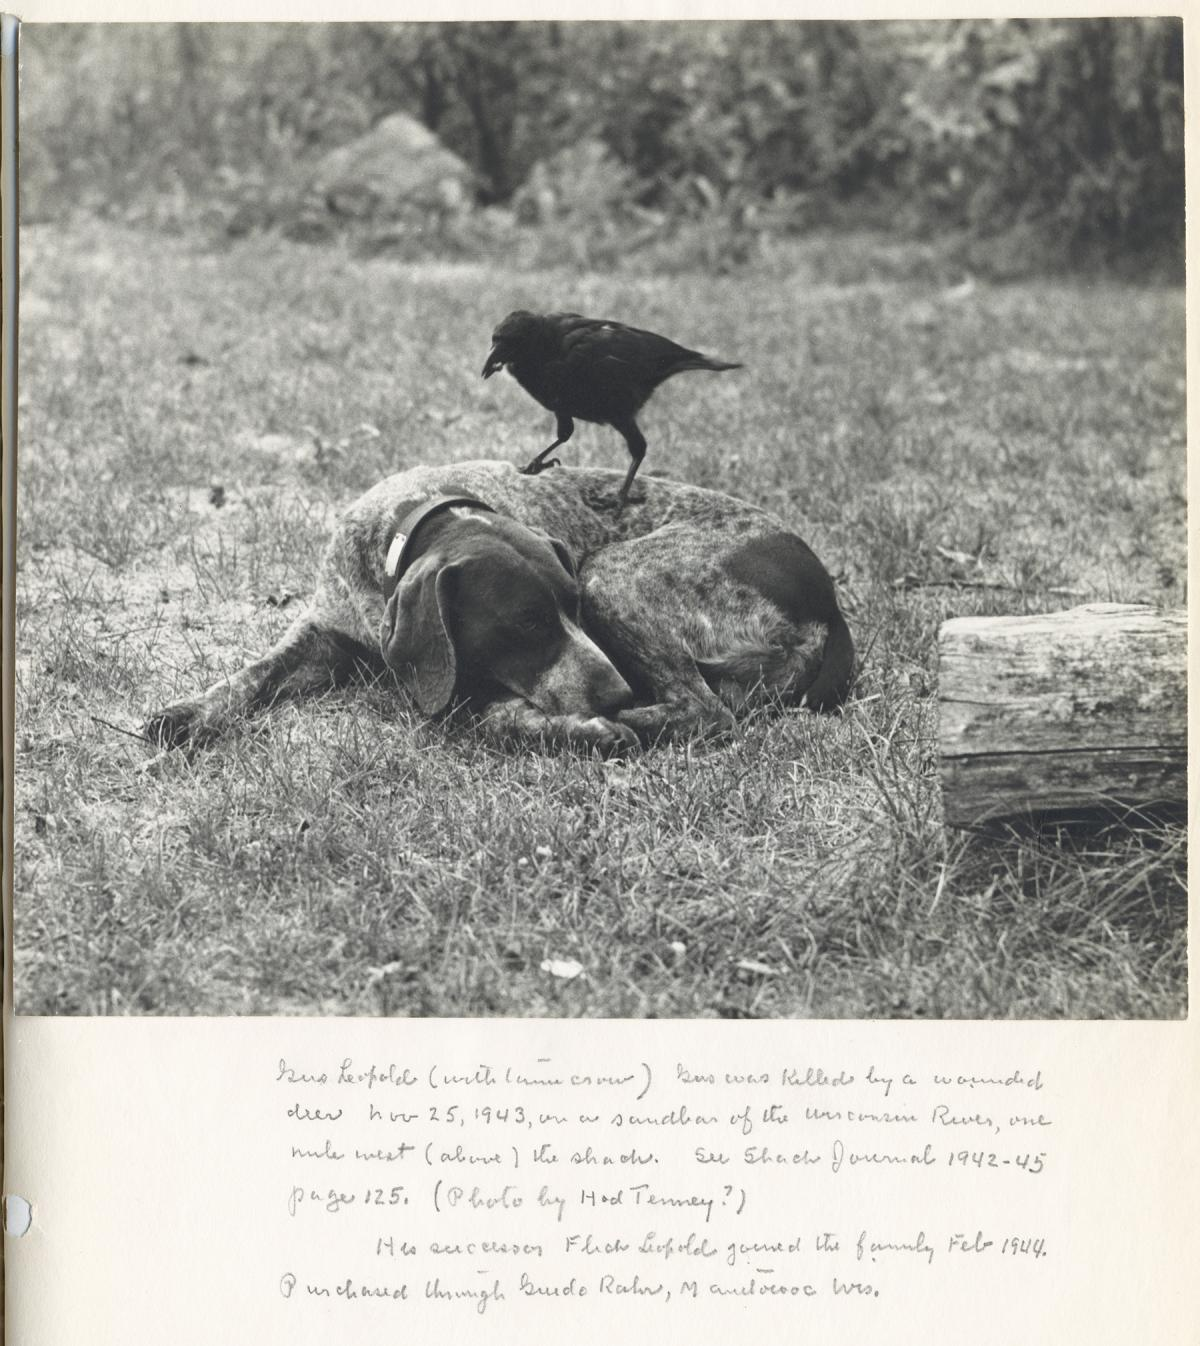 Black and white photo of dog laying down, a crow perched on it, with text at bottom